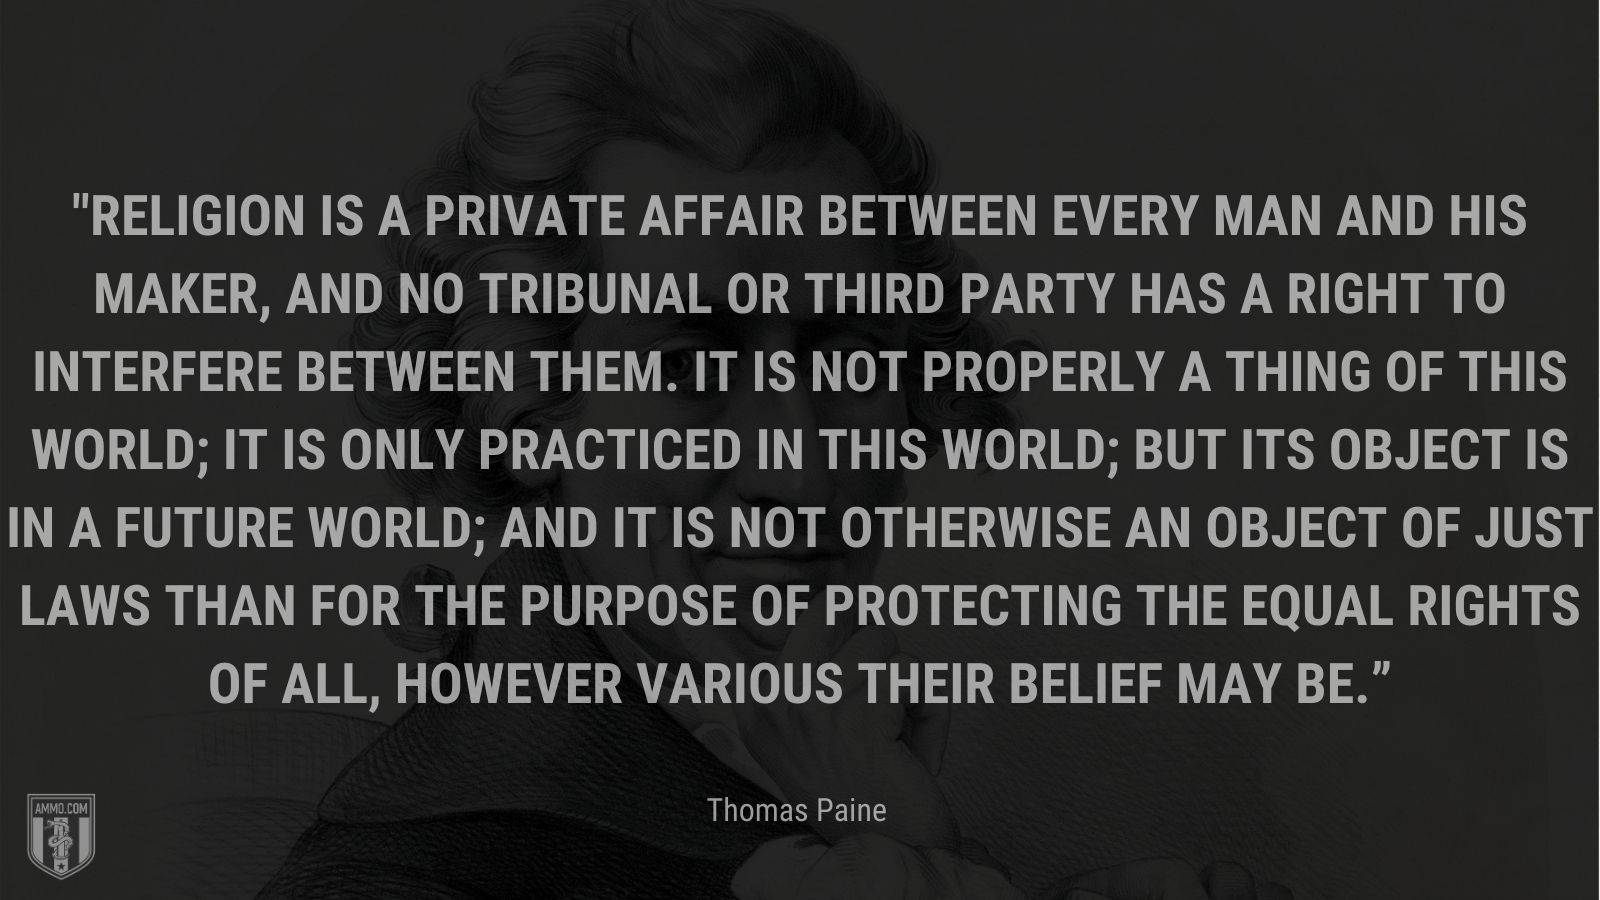 """""""Religion is a private affair between every man and his Maker, and no tribunal or third party has a right to interfere between them. It is not properly a thing of this world; it is only practiced in this world; but its object is in a future world; and it is not otherwise an object of just laws than for the purpose of protecting the equal rights of all, however various their belief may be."""" - Thomas Paine"""